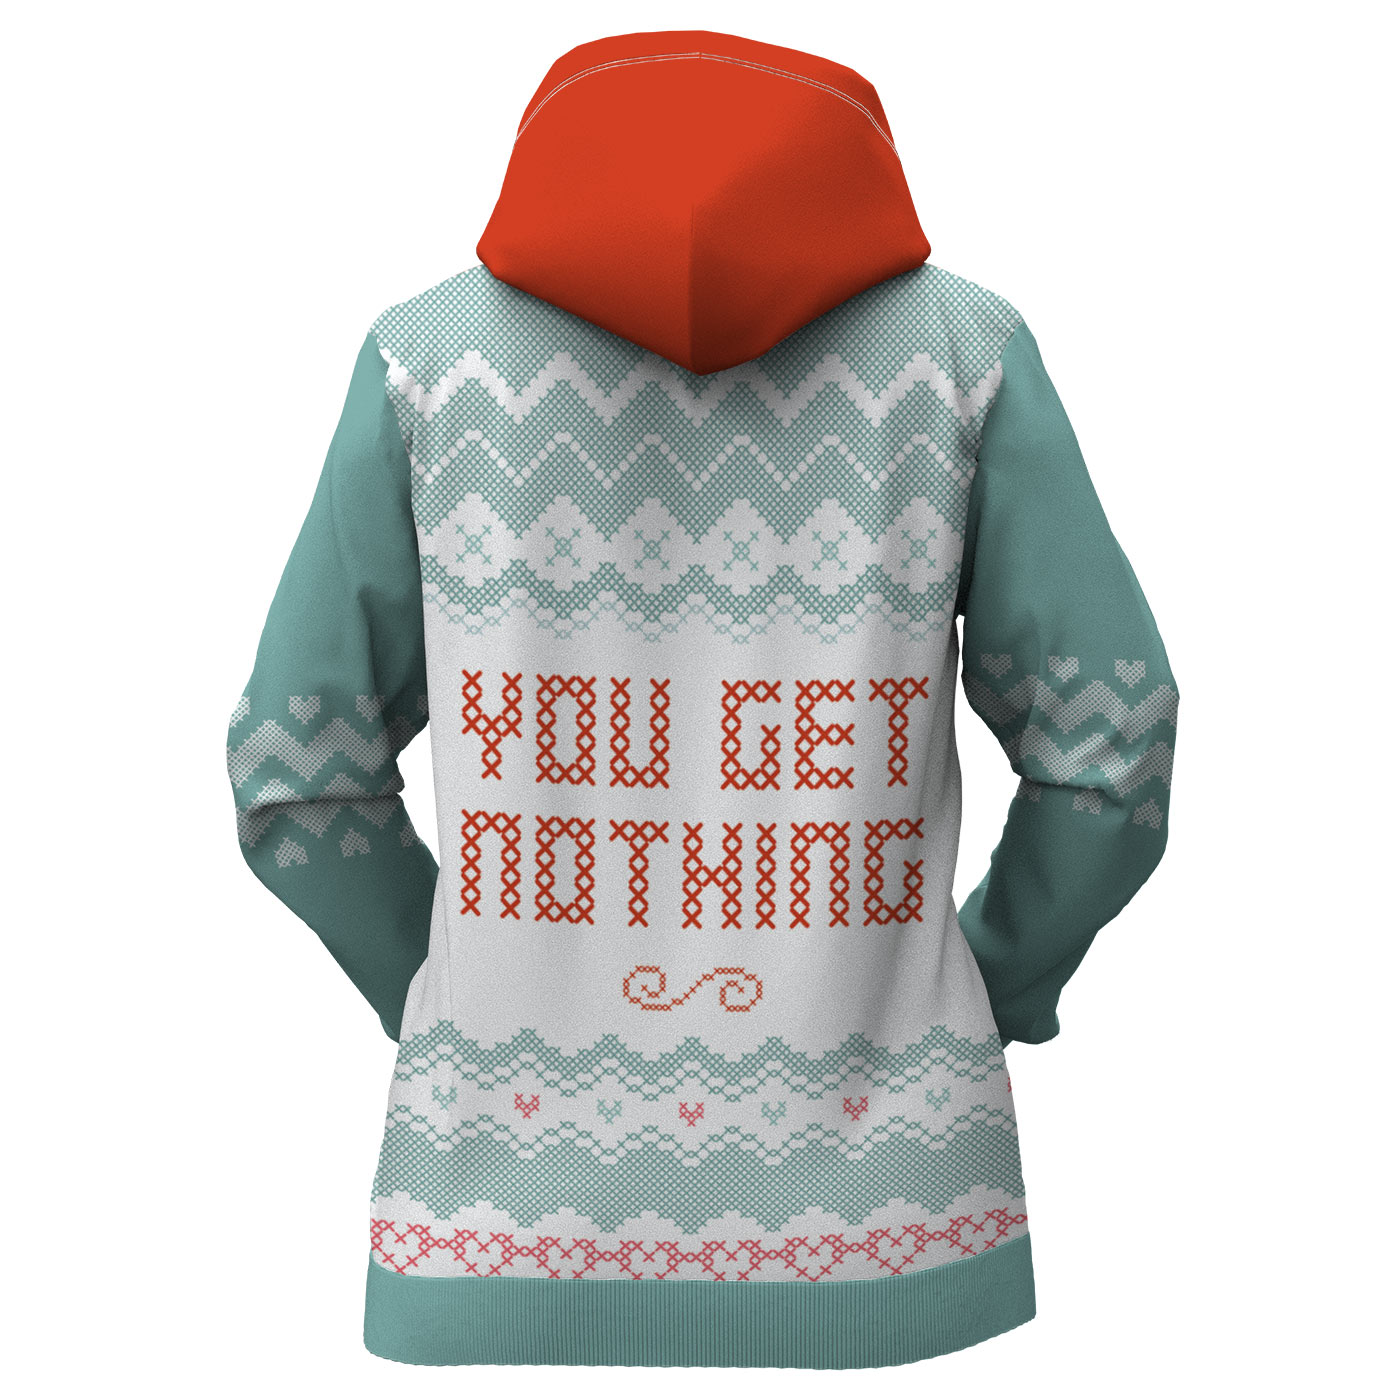 Not The Kindest Women Hoodie